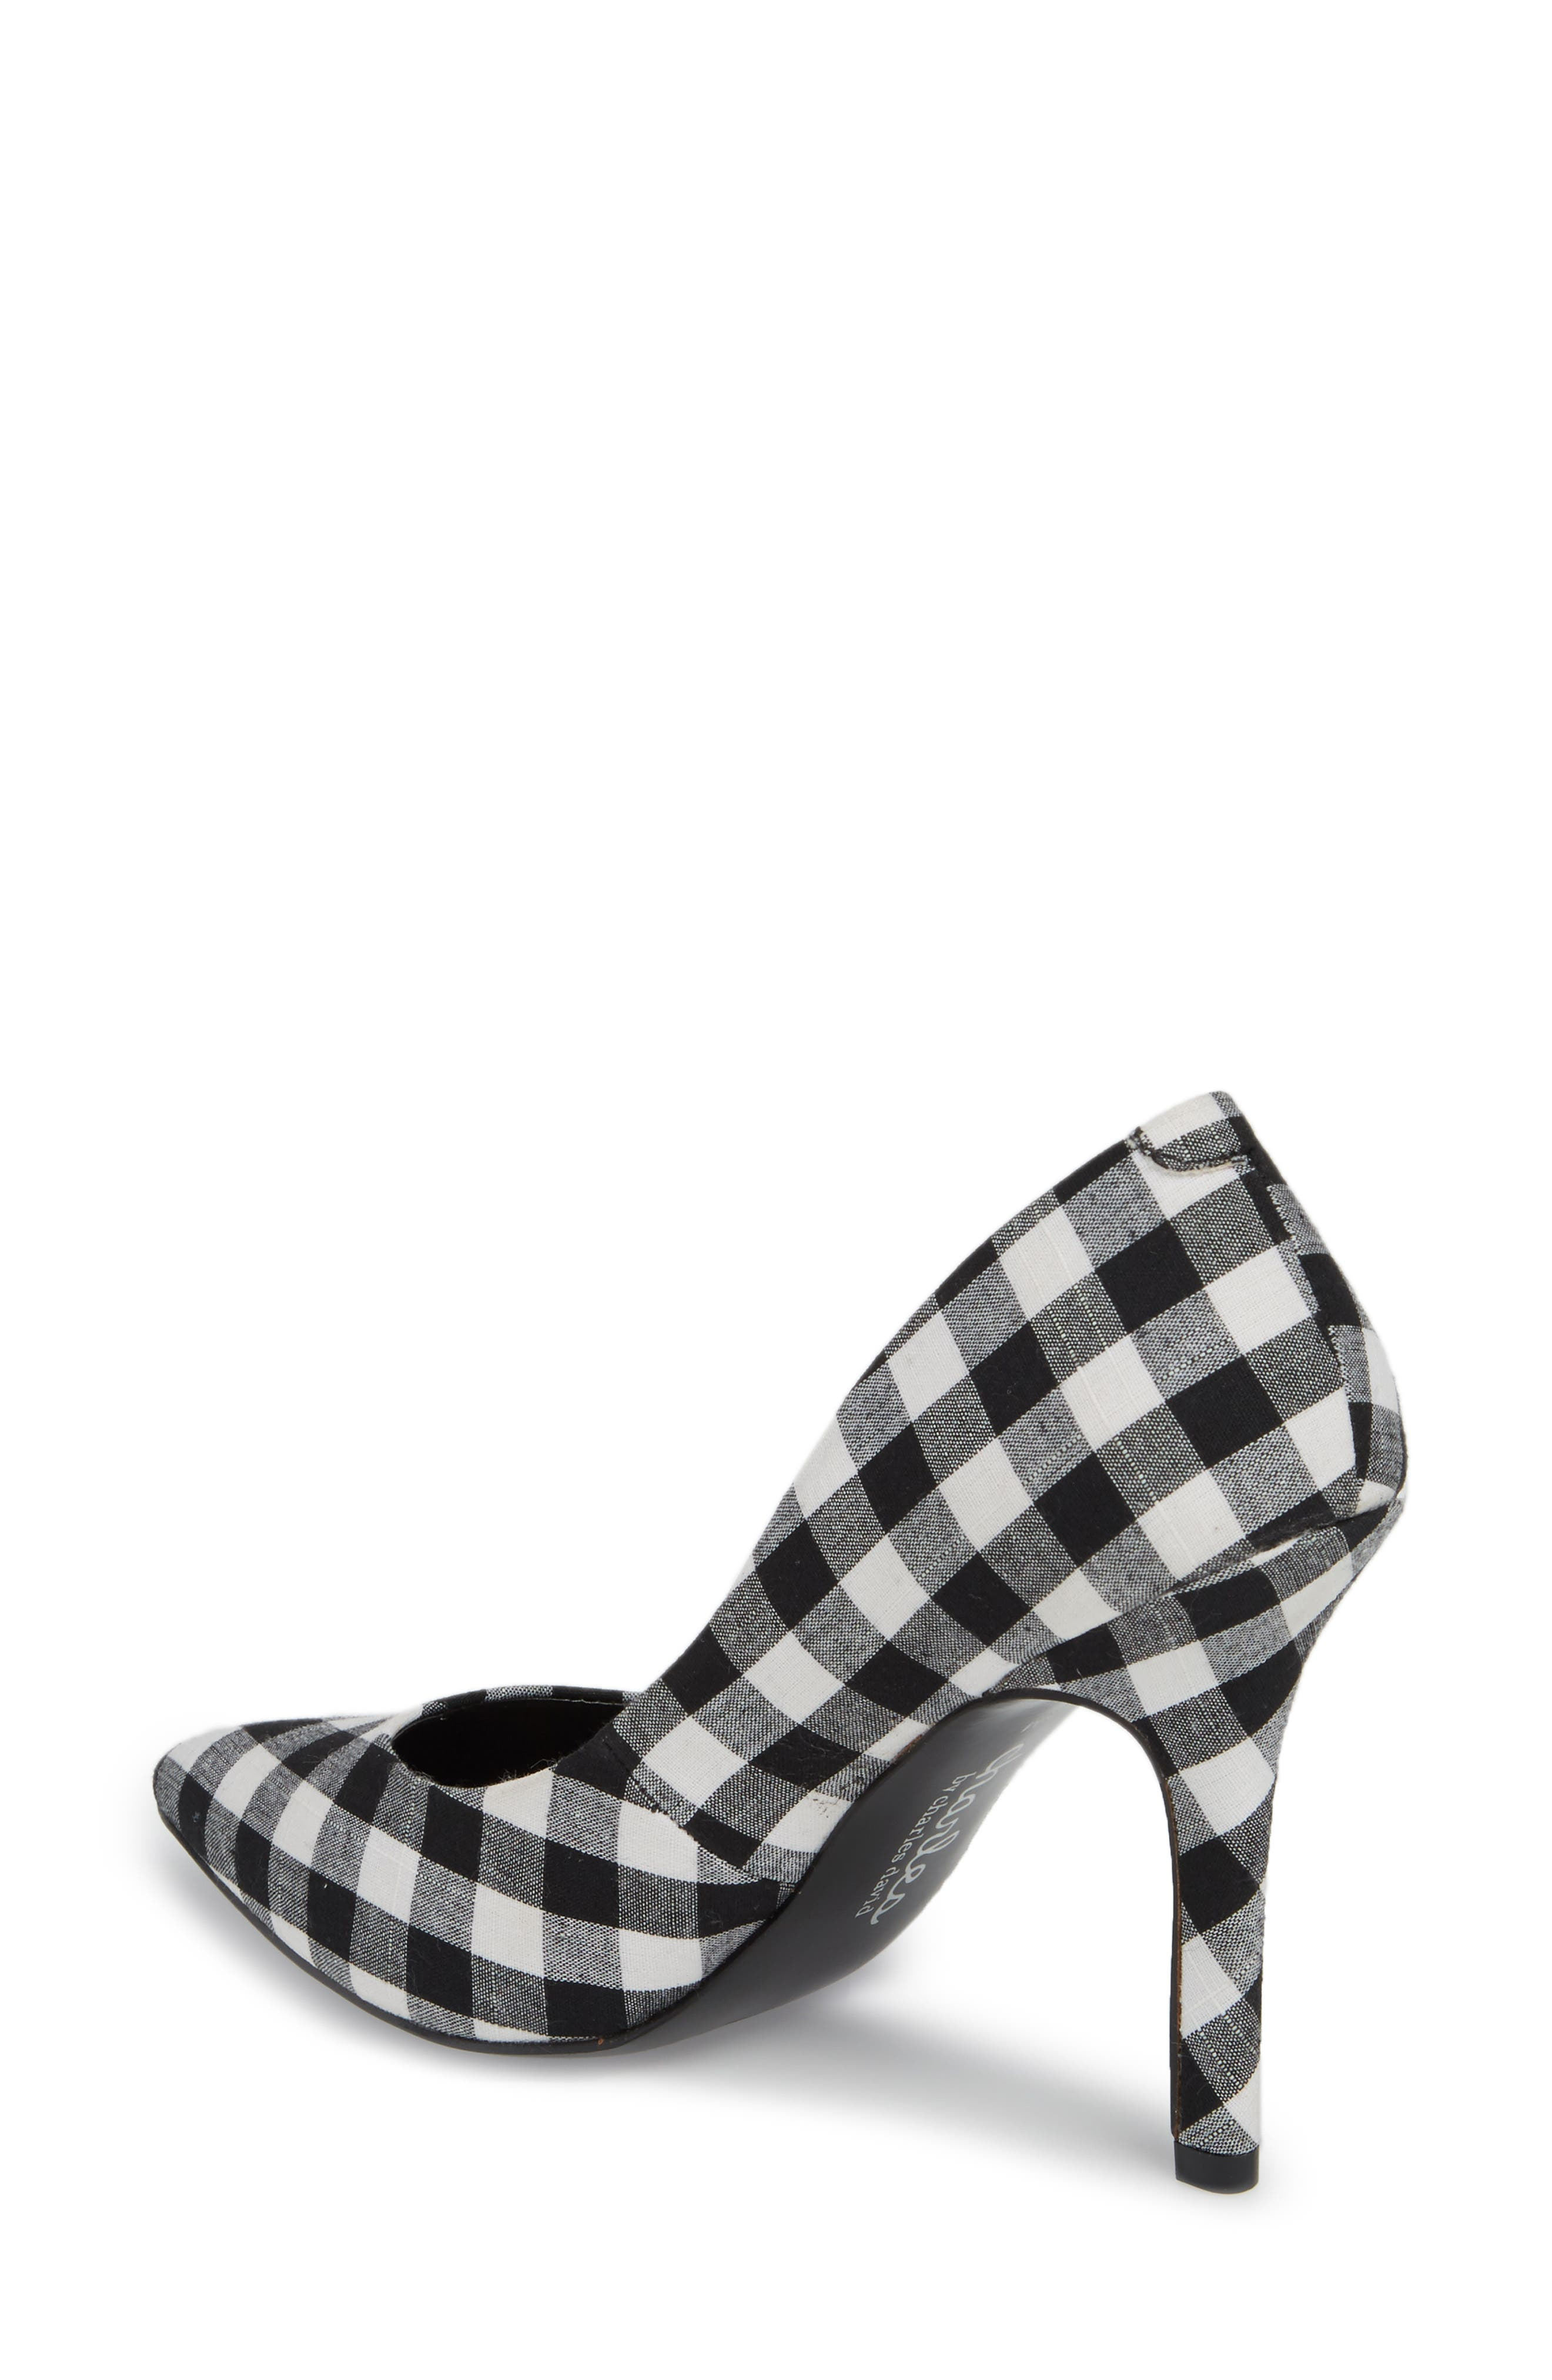 Maxx Pointy Toe Pump,                             Alternate thumbnail 2, color,                             BLACK/ WHITE GINGHAM FABRIC